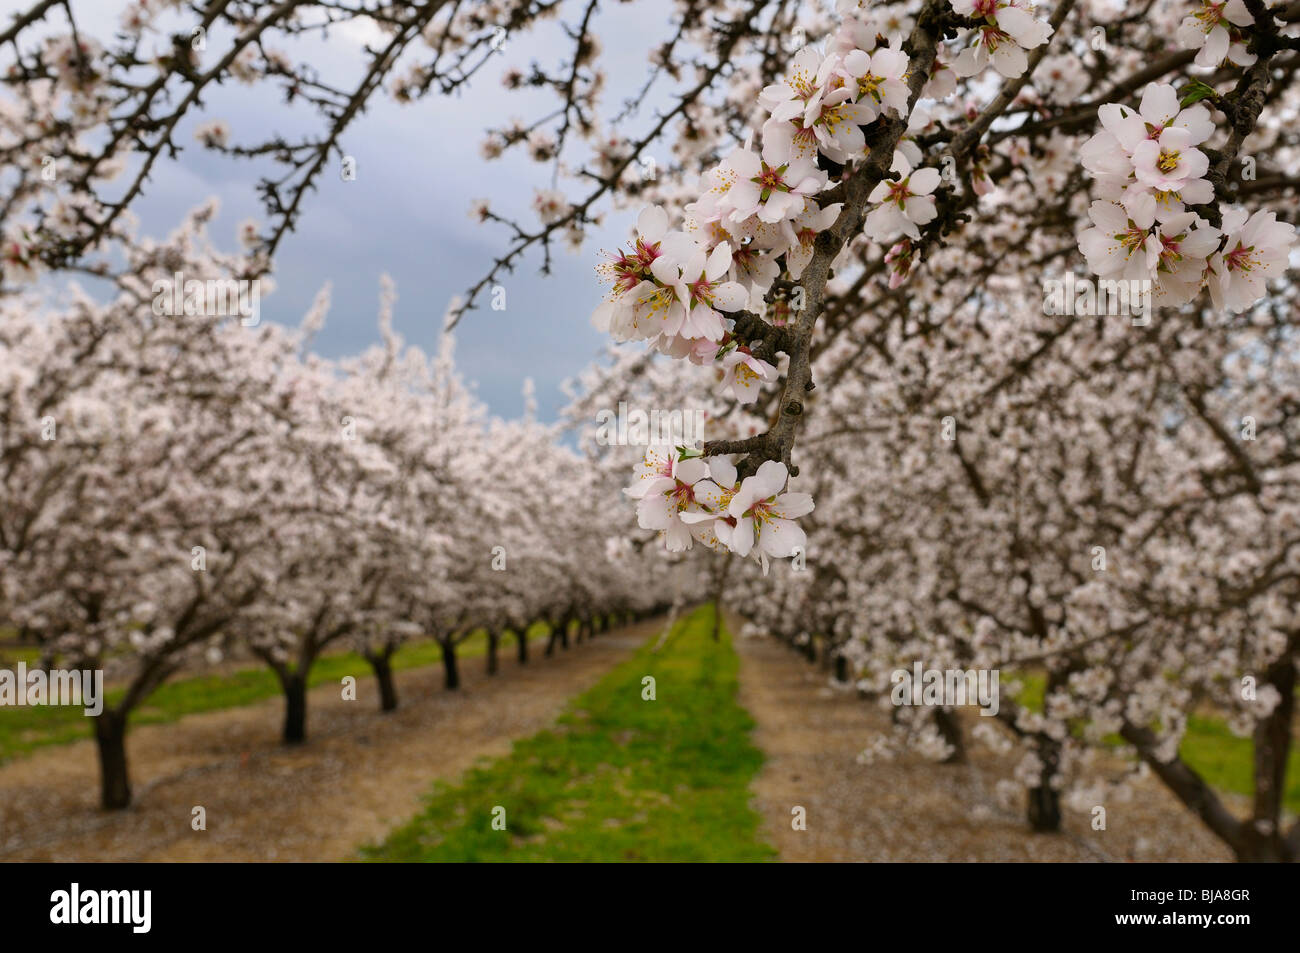 Close up of blossoms on a flowering almond tree in a California USA orchard with rows of trees in winter - Stock Image